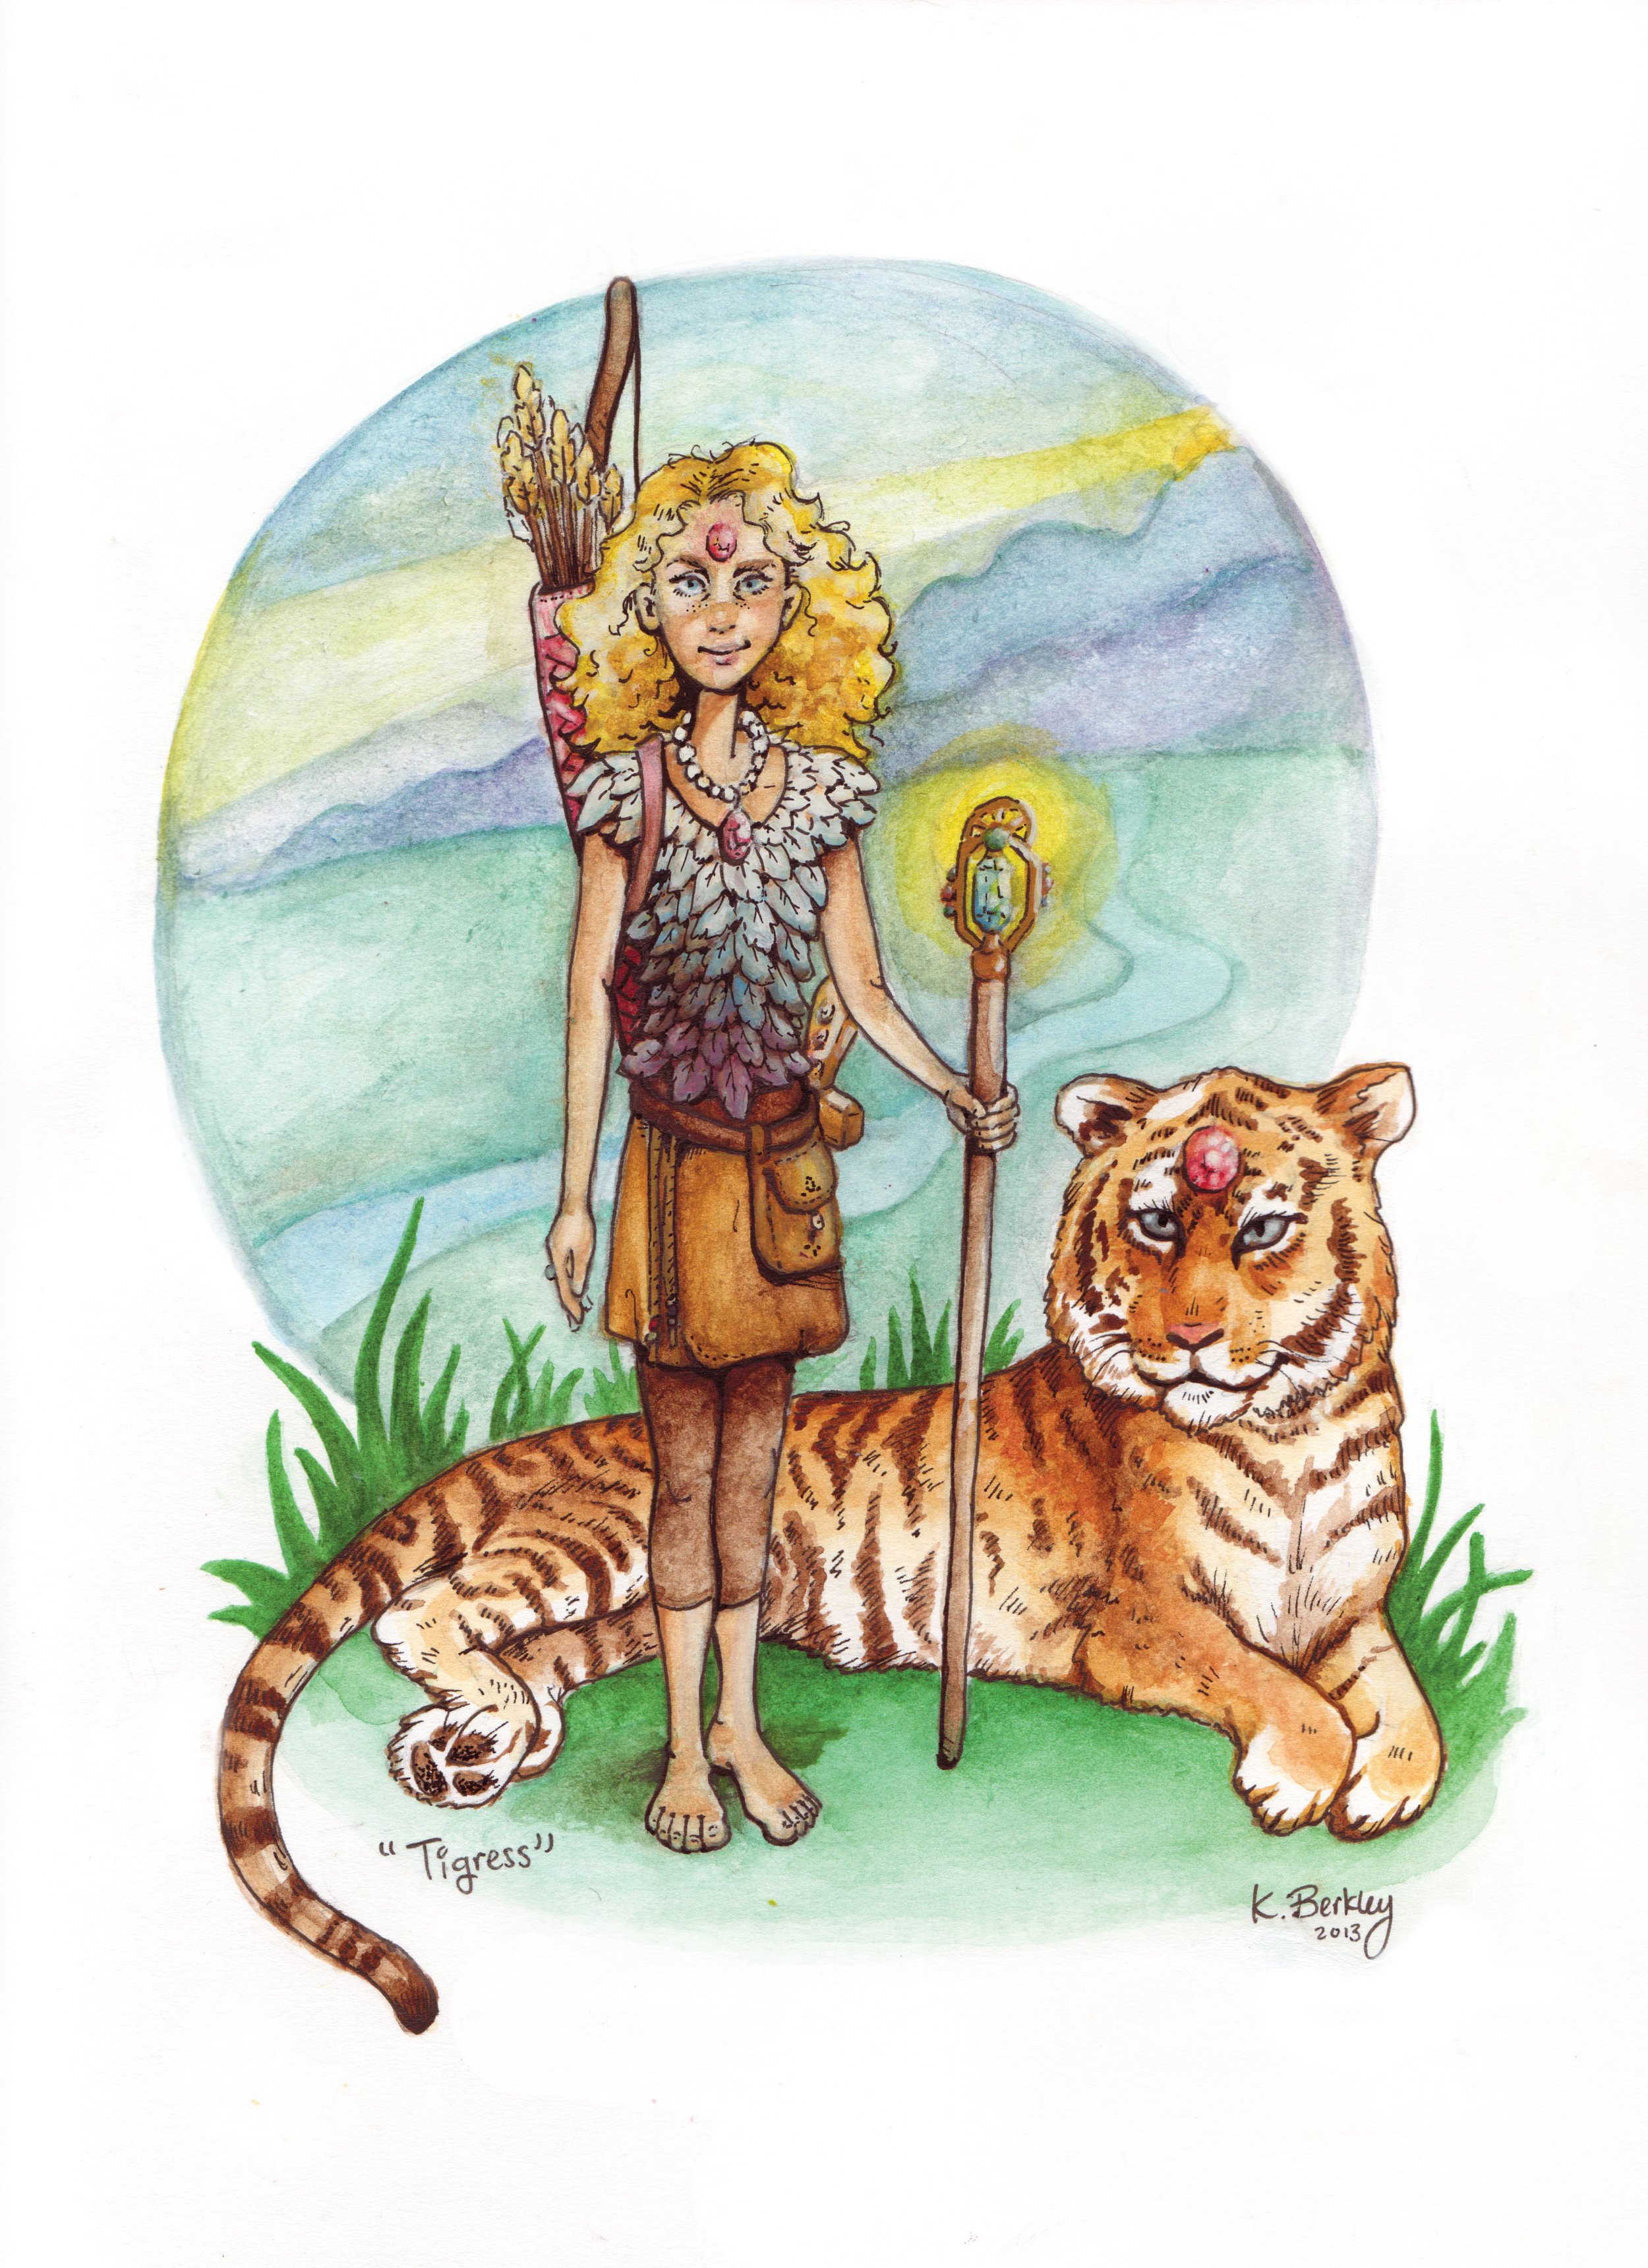 """""""Tigress : An Elliot Berkley Character"""" Fictional Heroine described in a 10-year olds short stories. Watercolor on paper"""